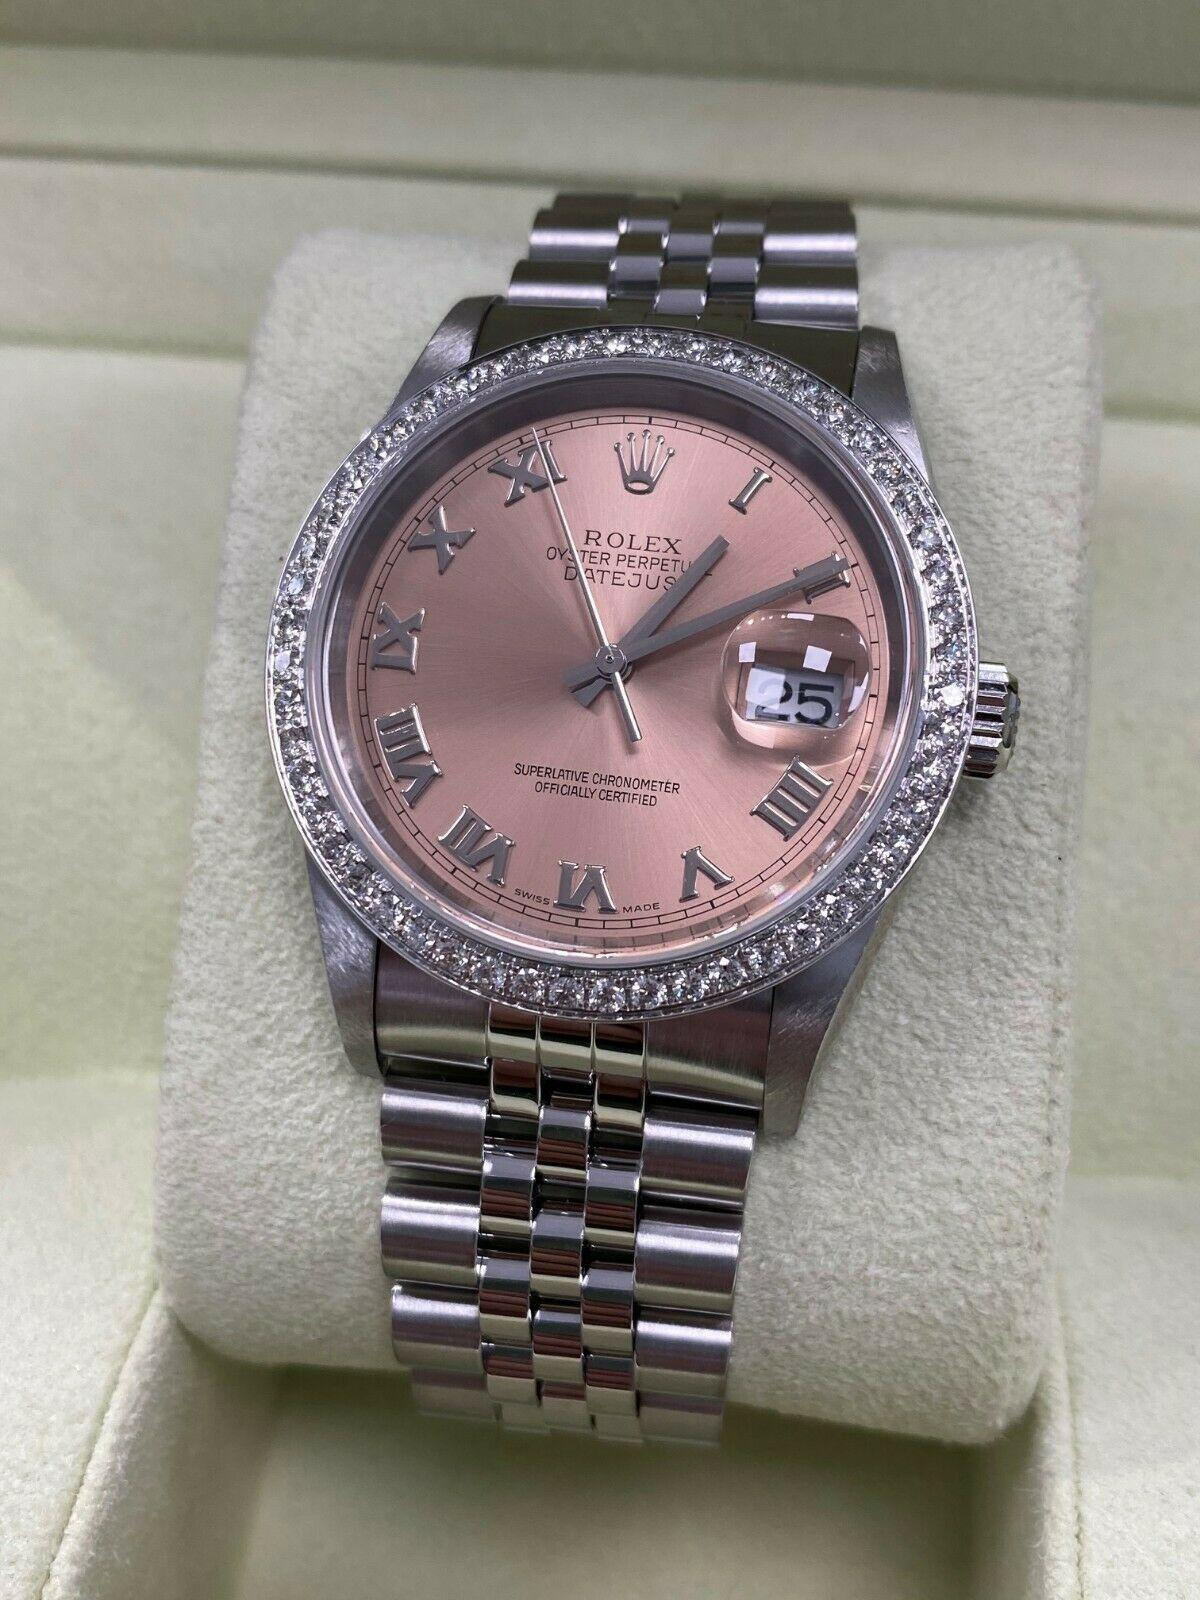 Rolex Datejust 16220 Pink Dial Diamond Bezel Stainless Steel Box Papers